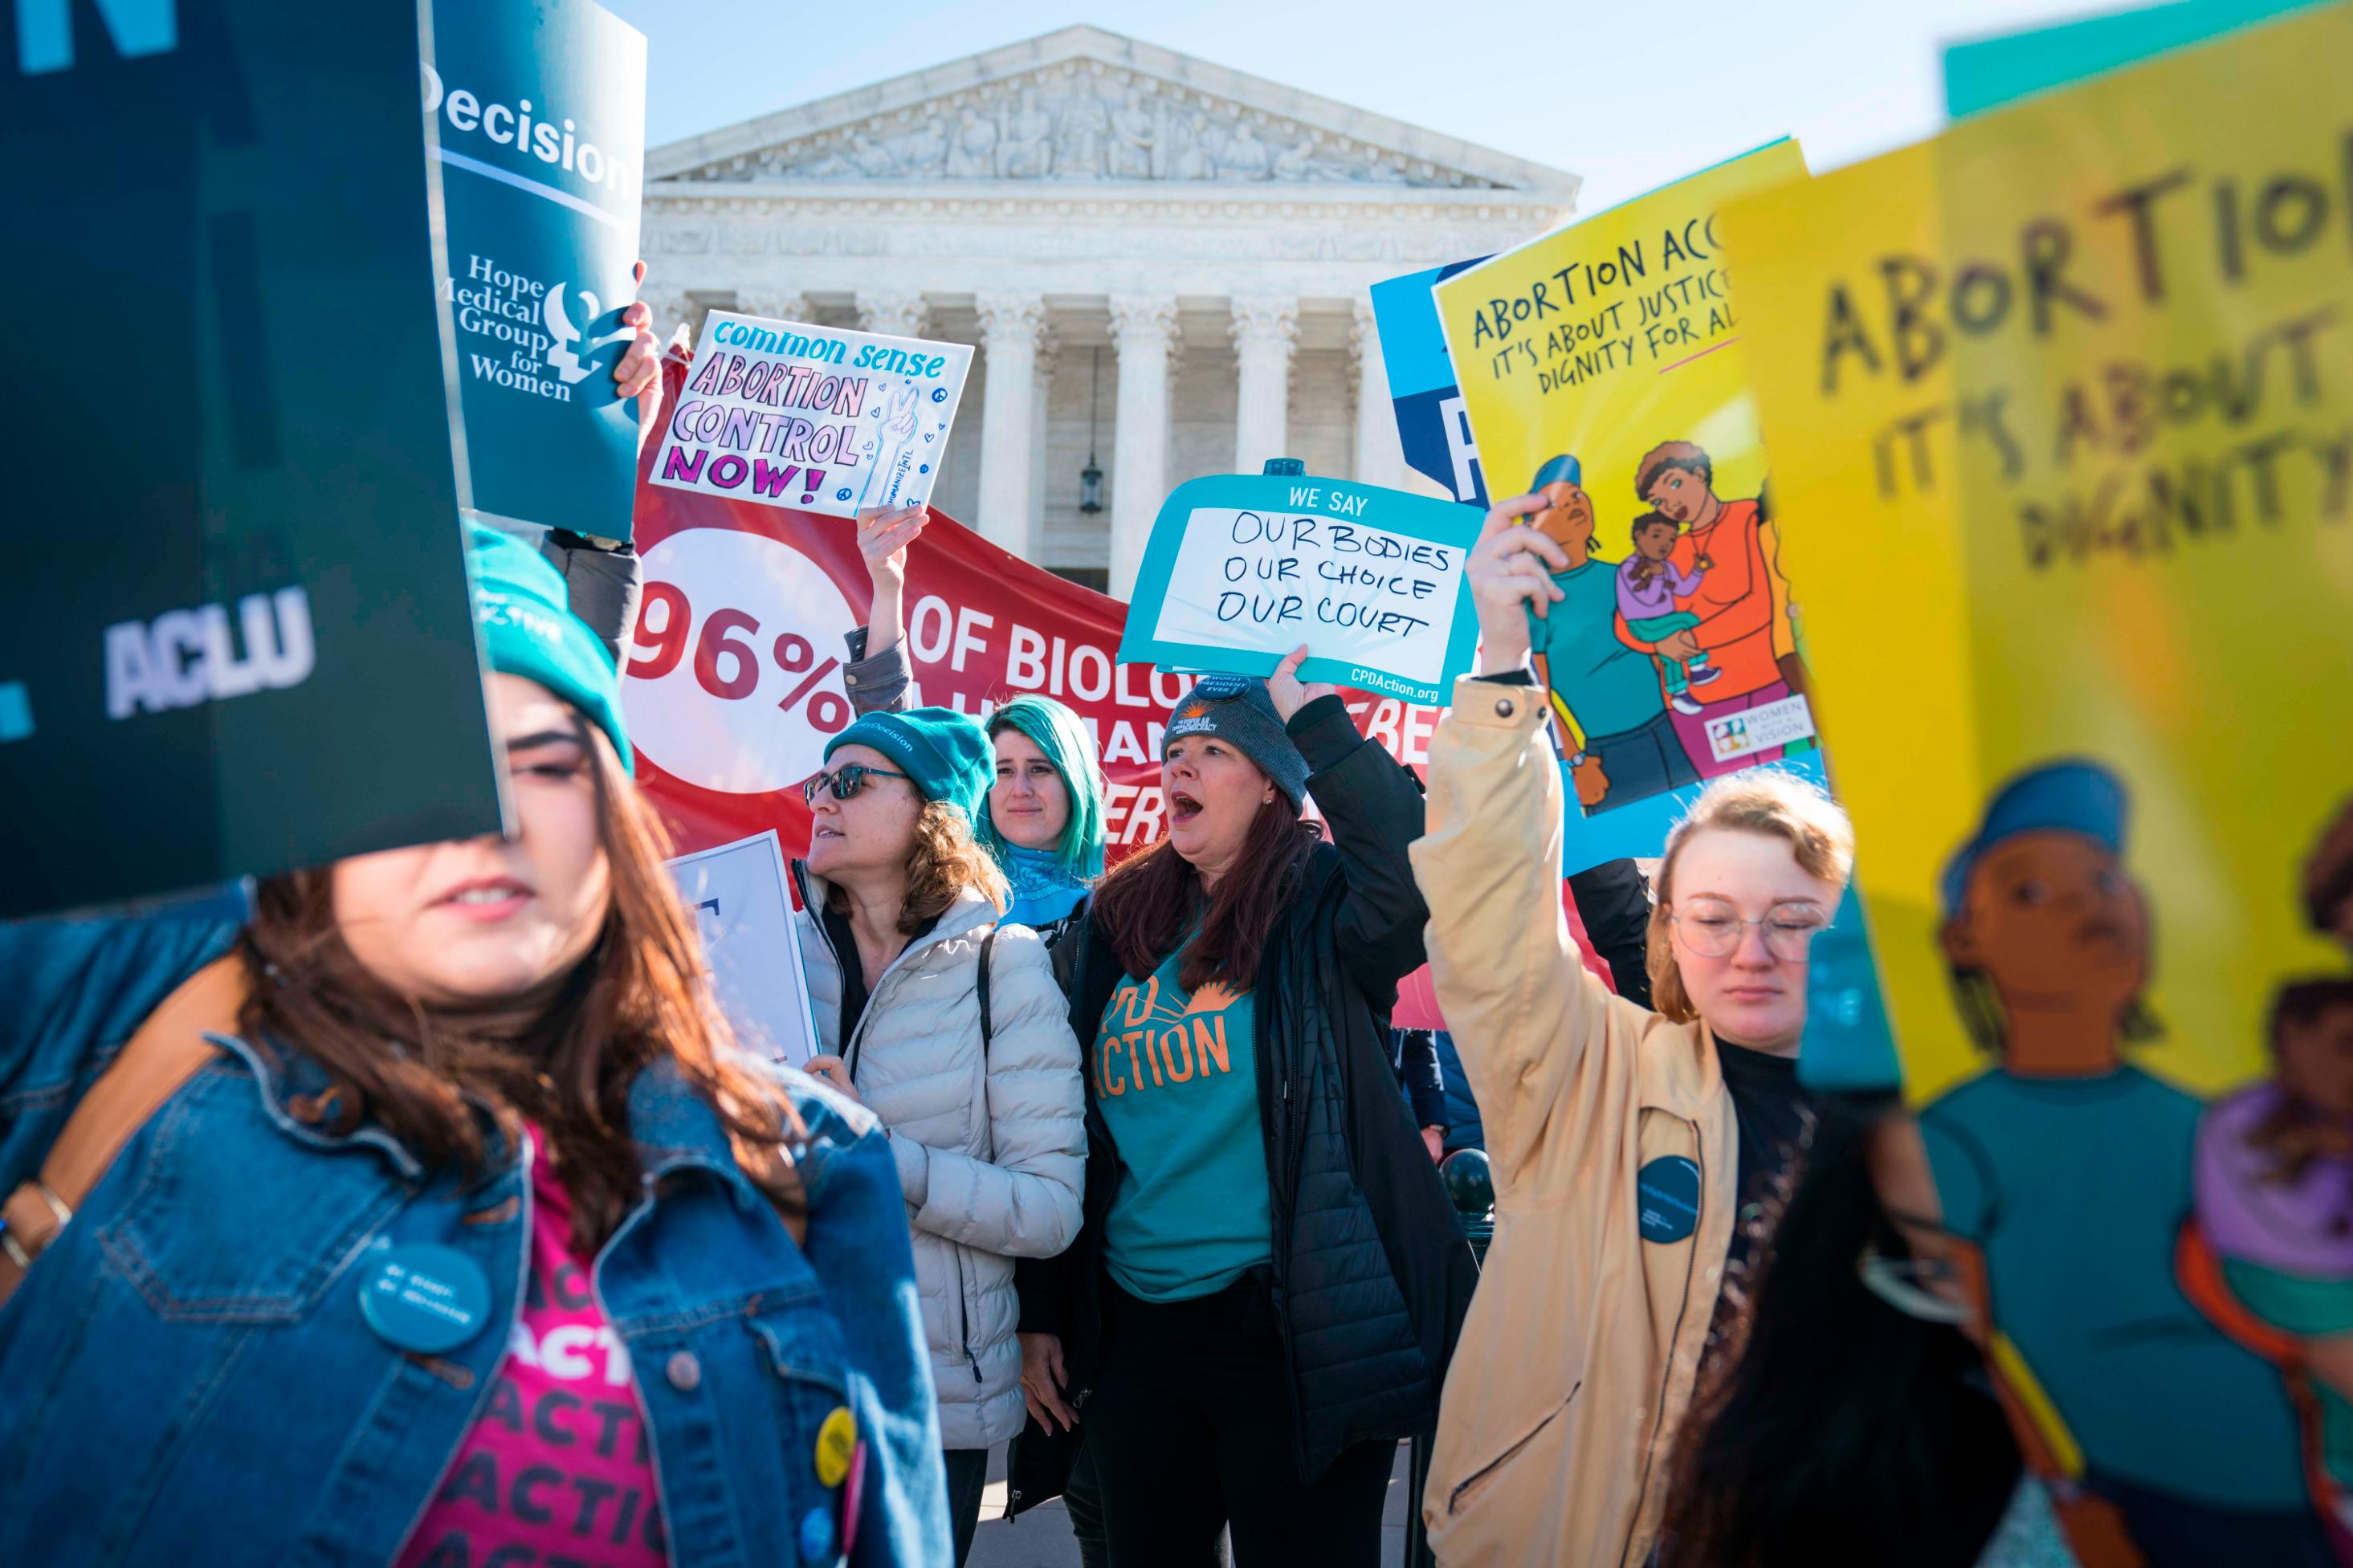 Federal judges in 3 states block orders limiting abortion access over coronavirus